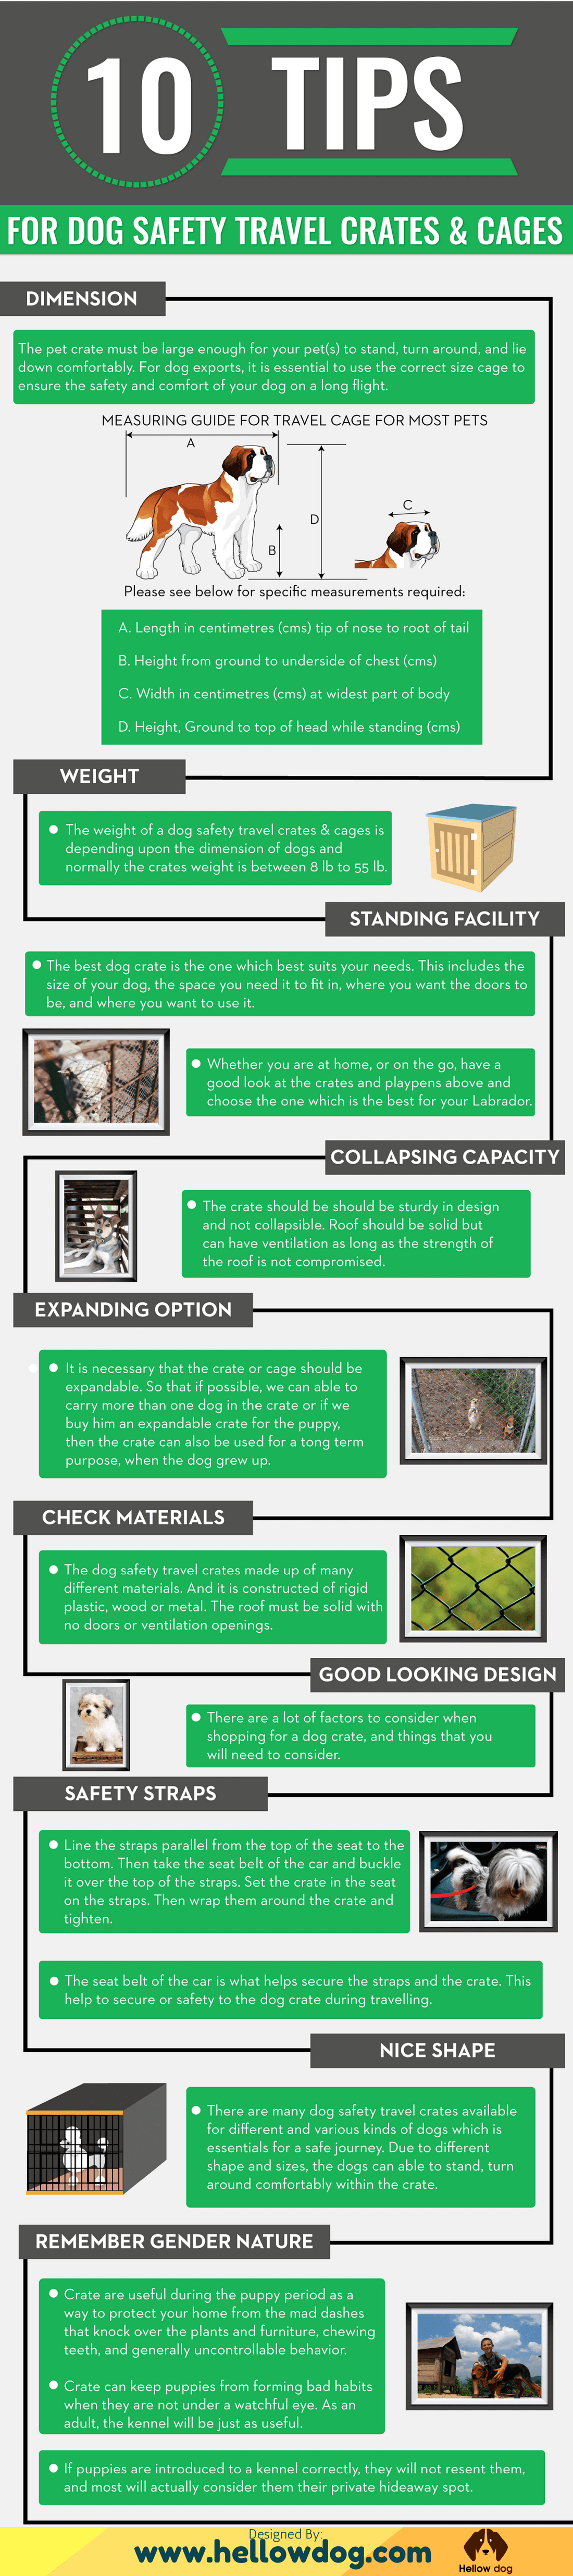 Dog Safety Travel Crates & Cages- Infographic